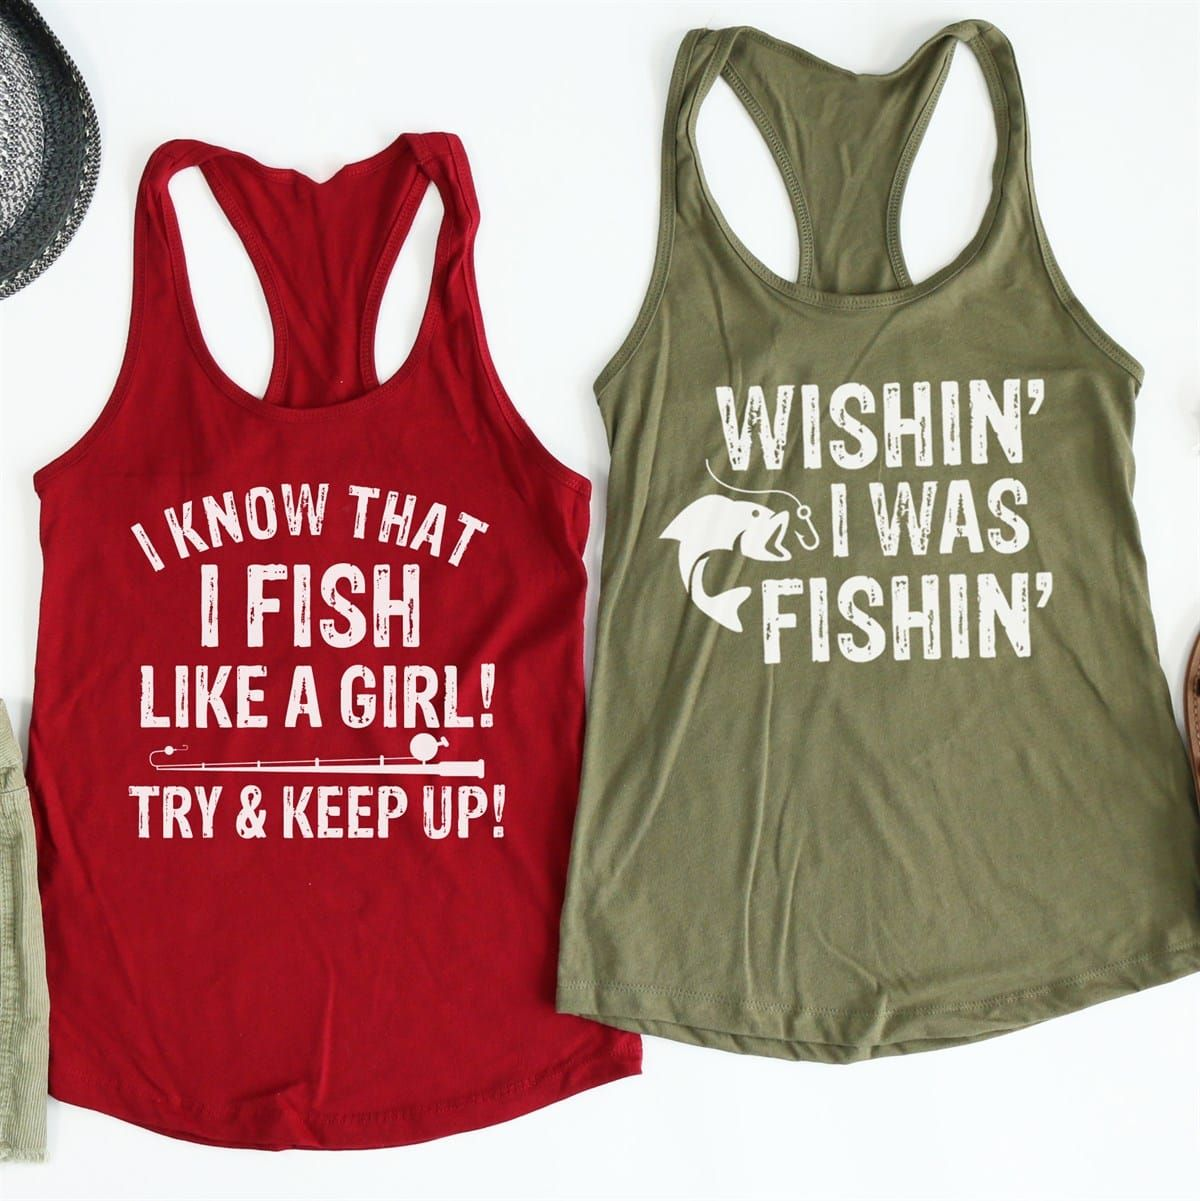 Fishing Tanks Collection Fishing Tank Athletic Tank Tops Girls Be Like